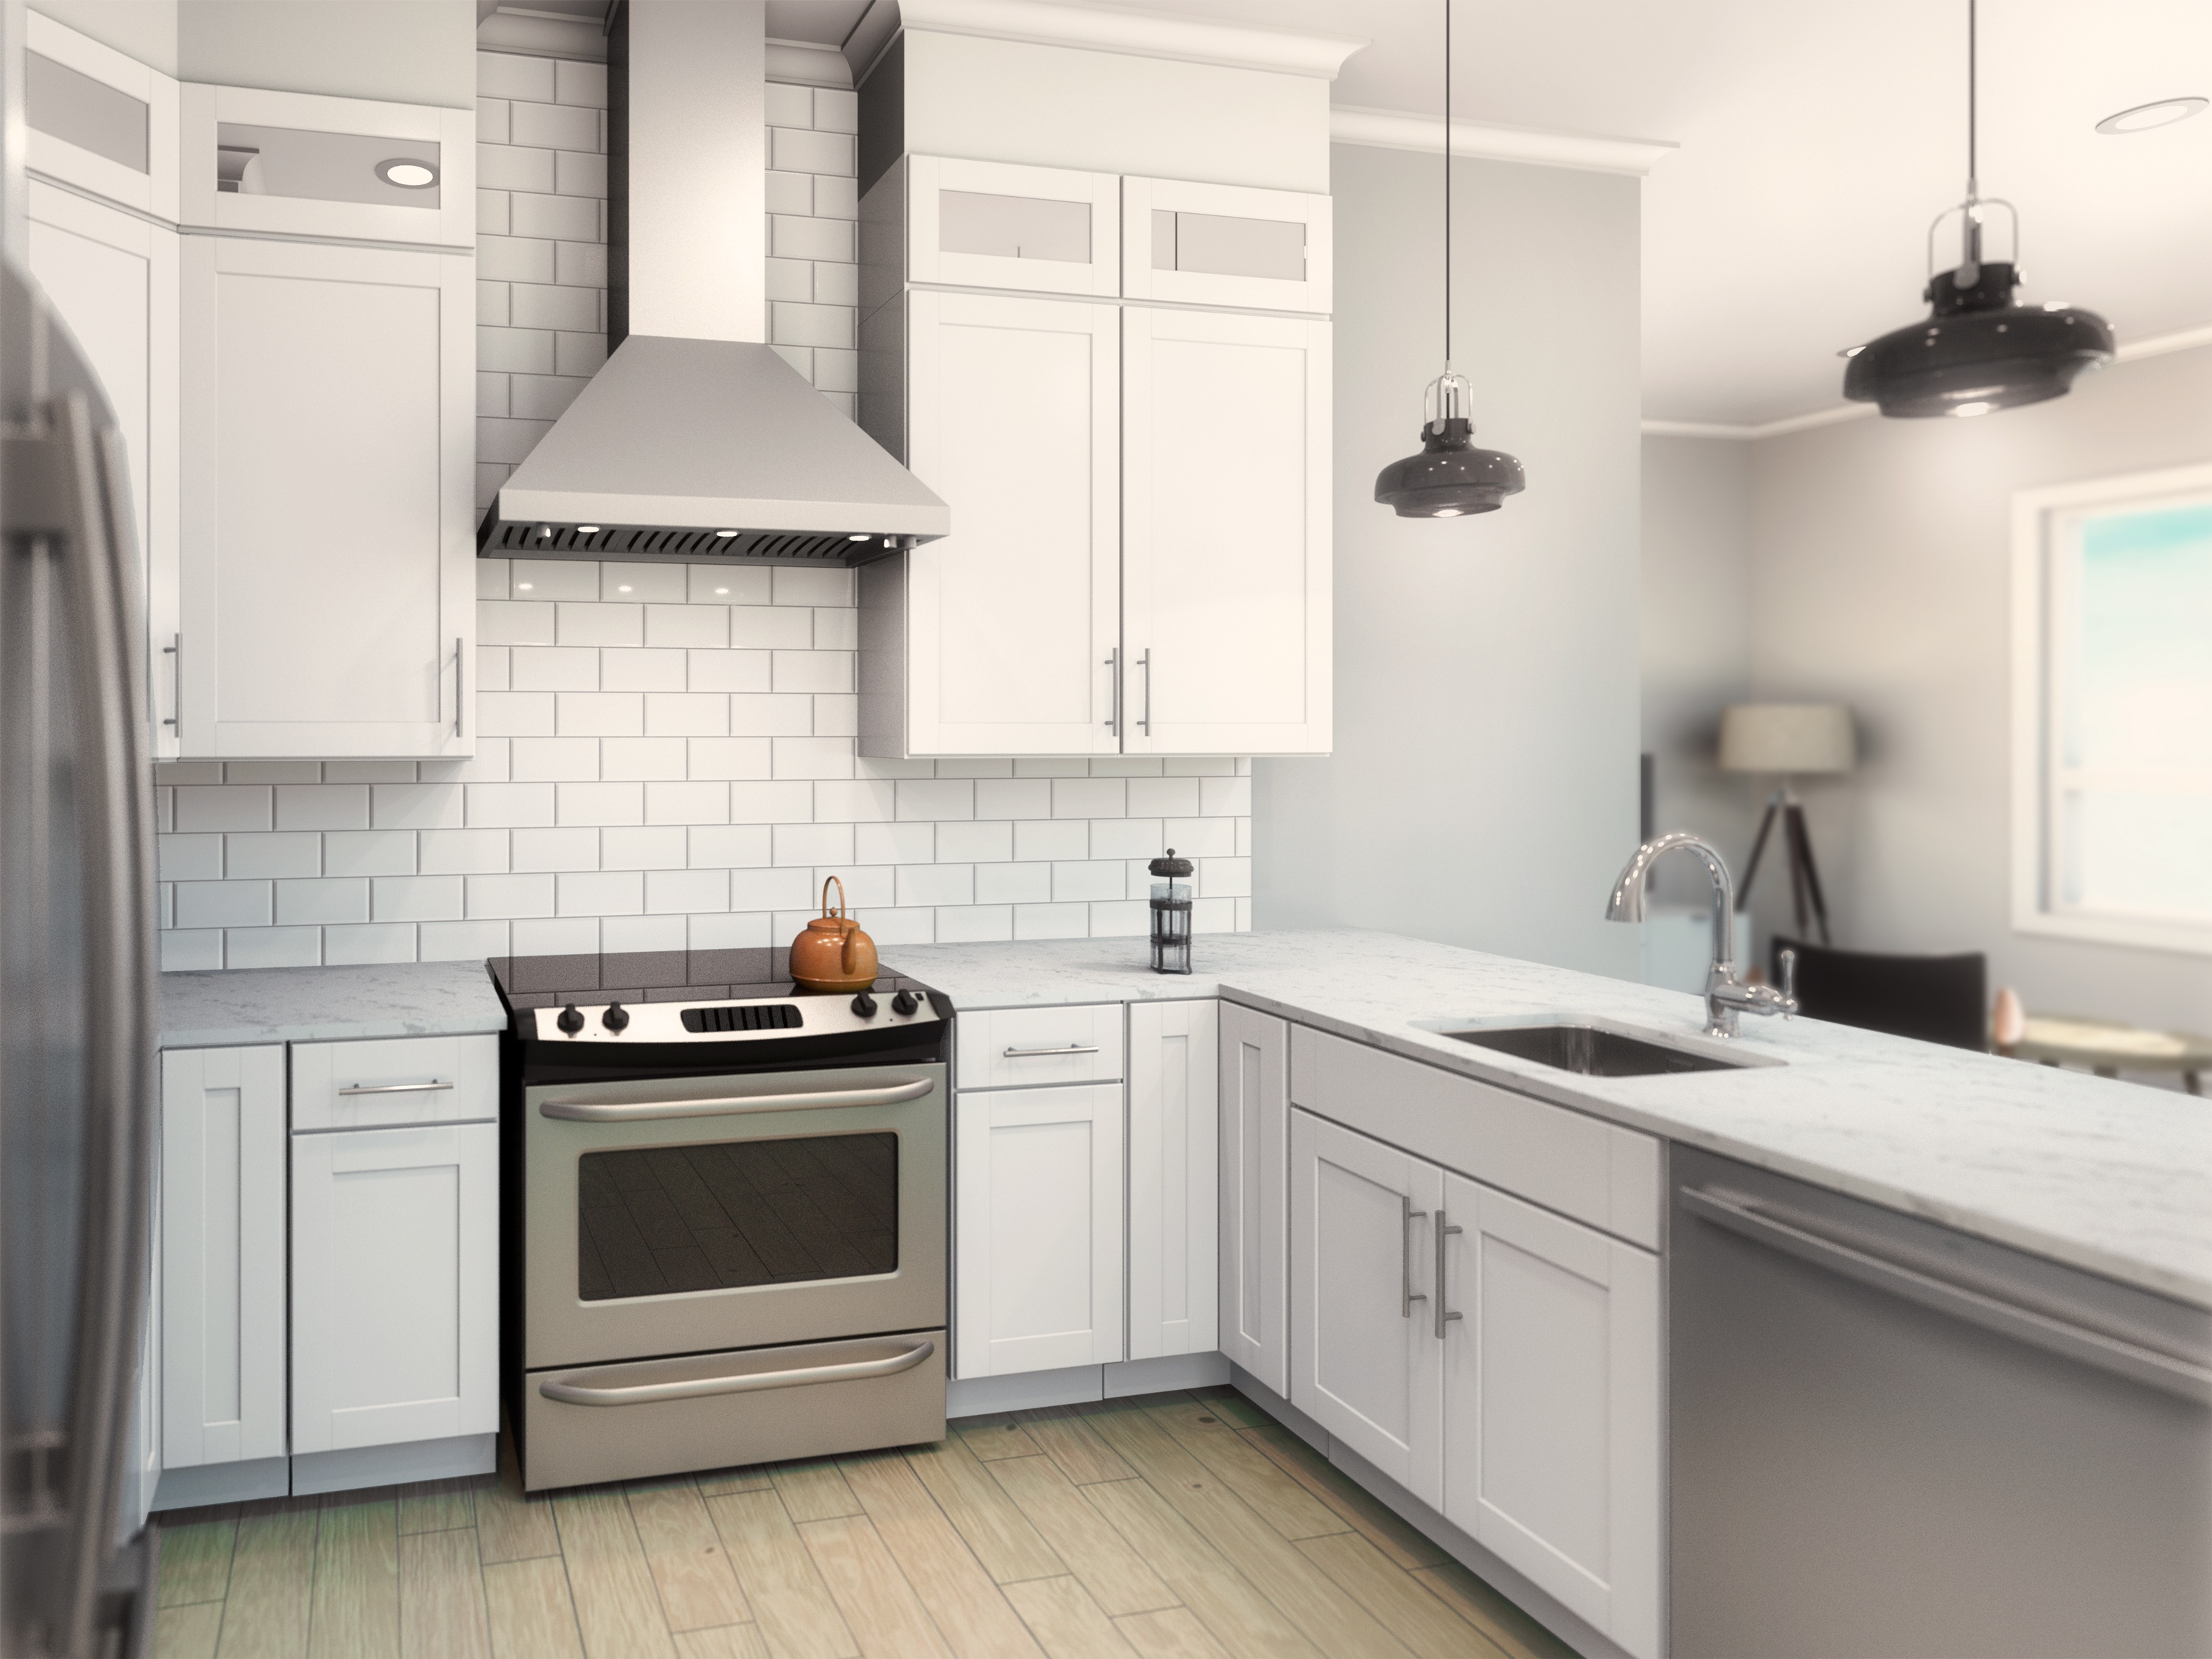 16081201-Leland-Street--Kitchen-Rendering.jpg